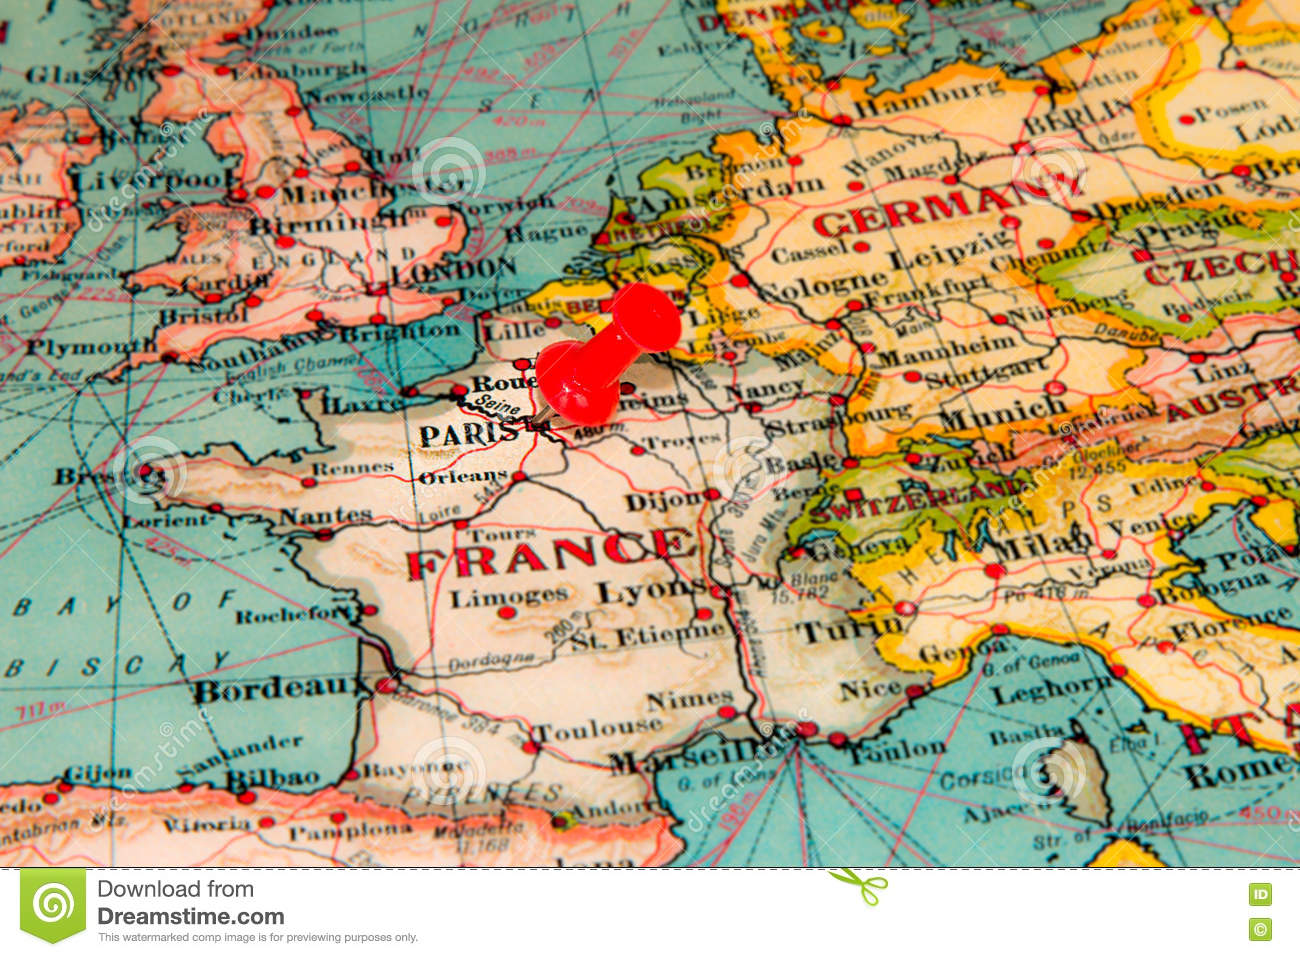 Paris France Pinned On Vintage Map Of Europe Stock Photo Image 78864904